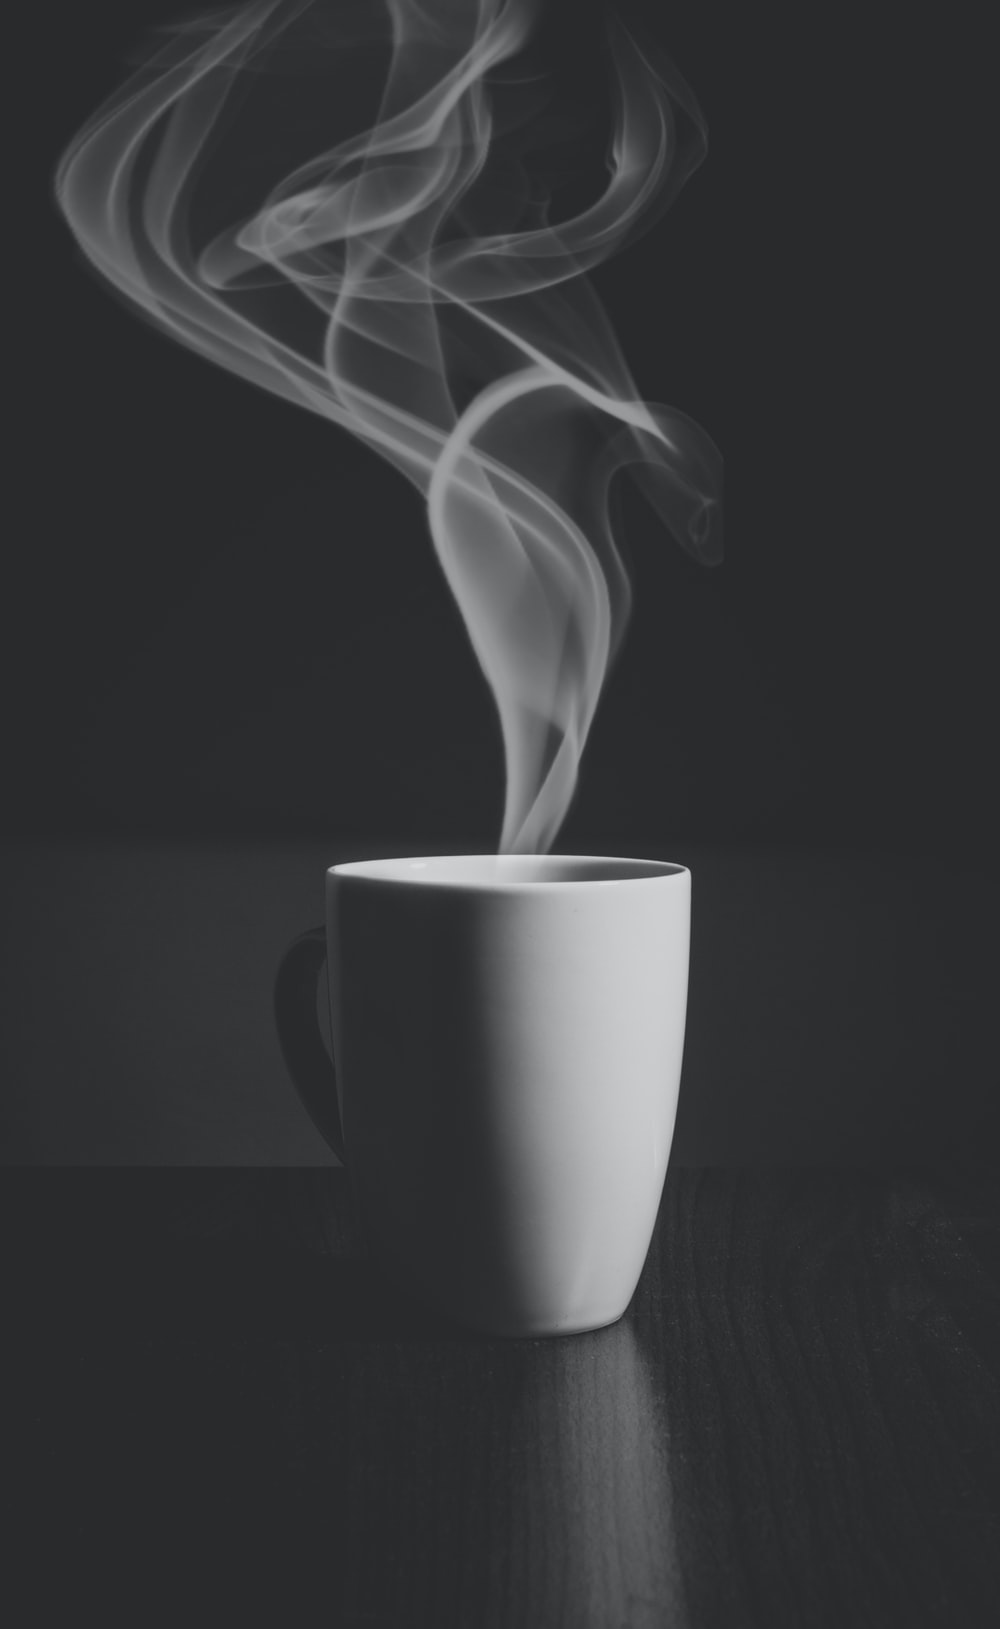 A hot drink in a white cup, with steam rising into the air.